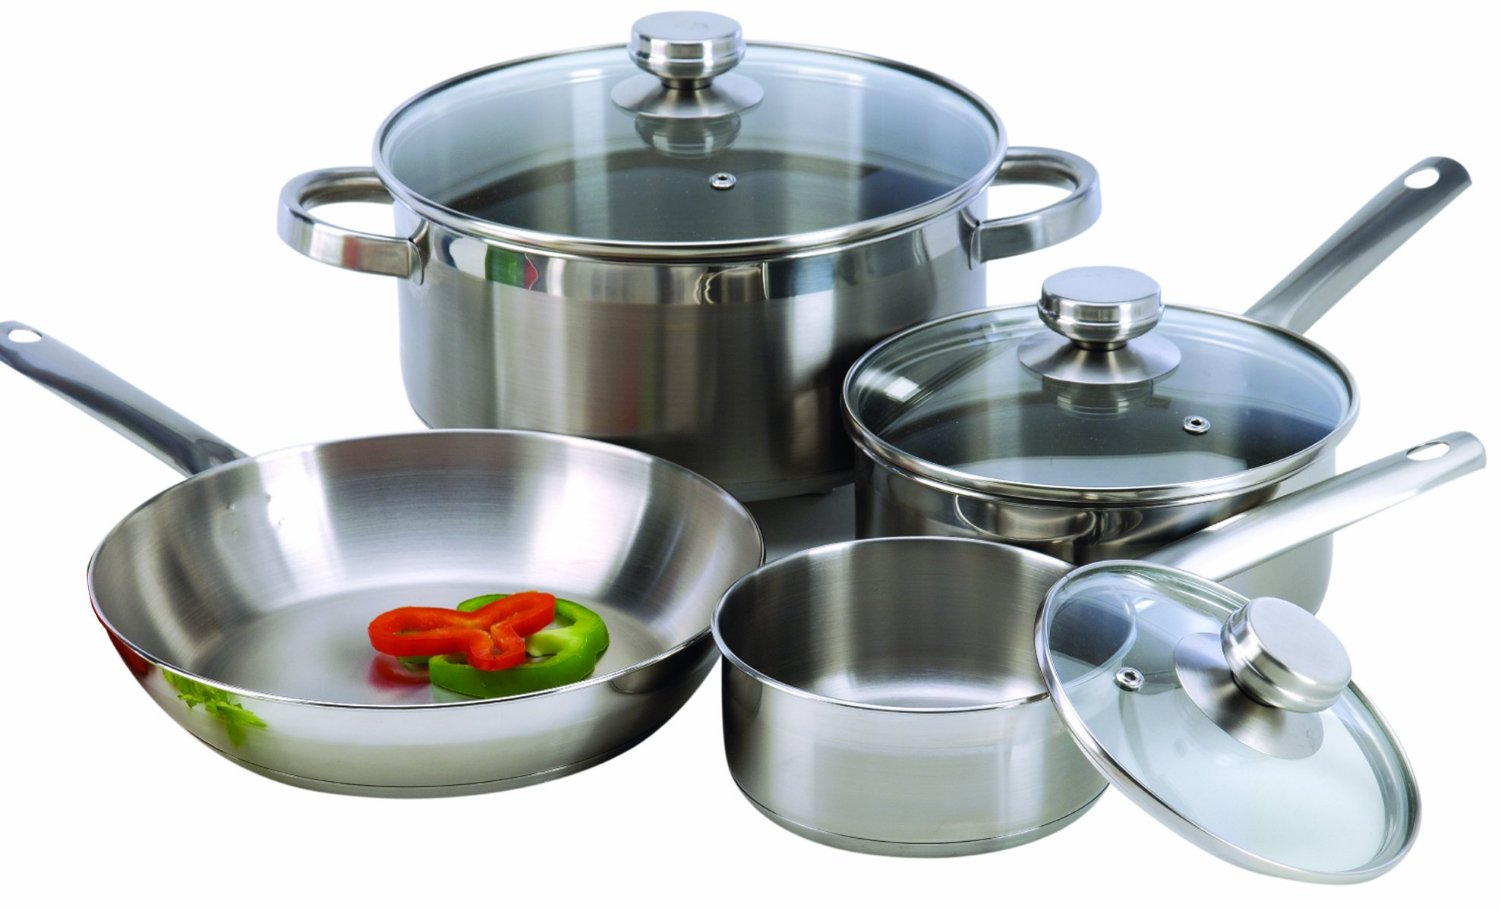 Excelsteel 7-Piece Stainless Steel Cookware Review